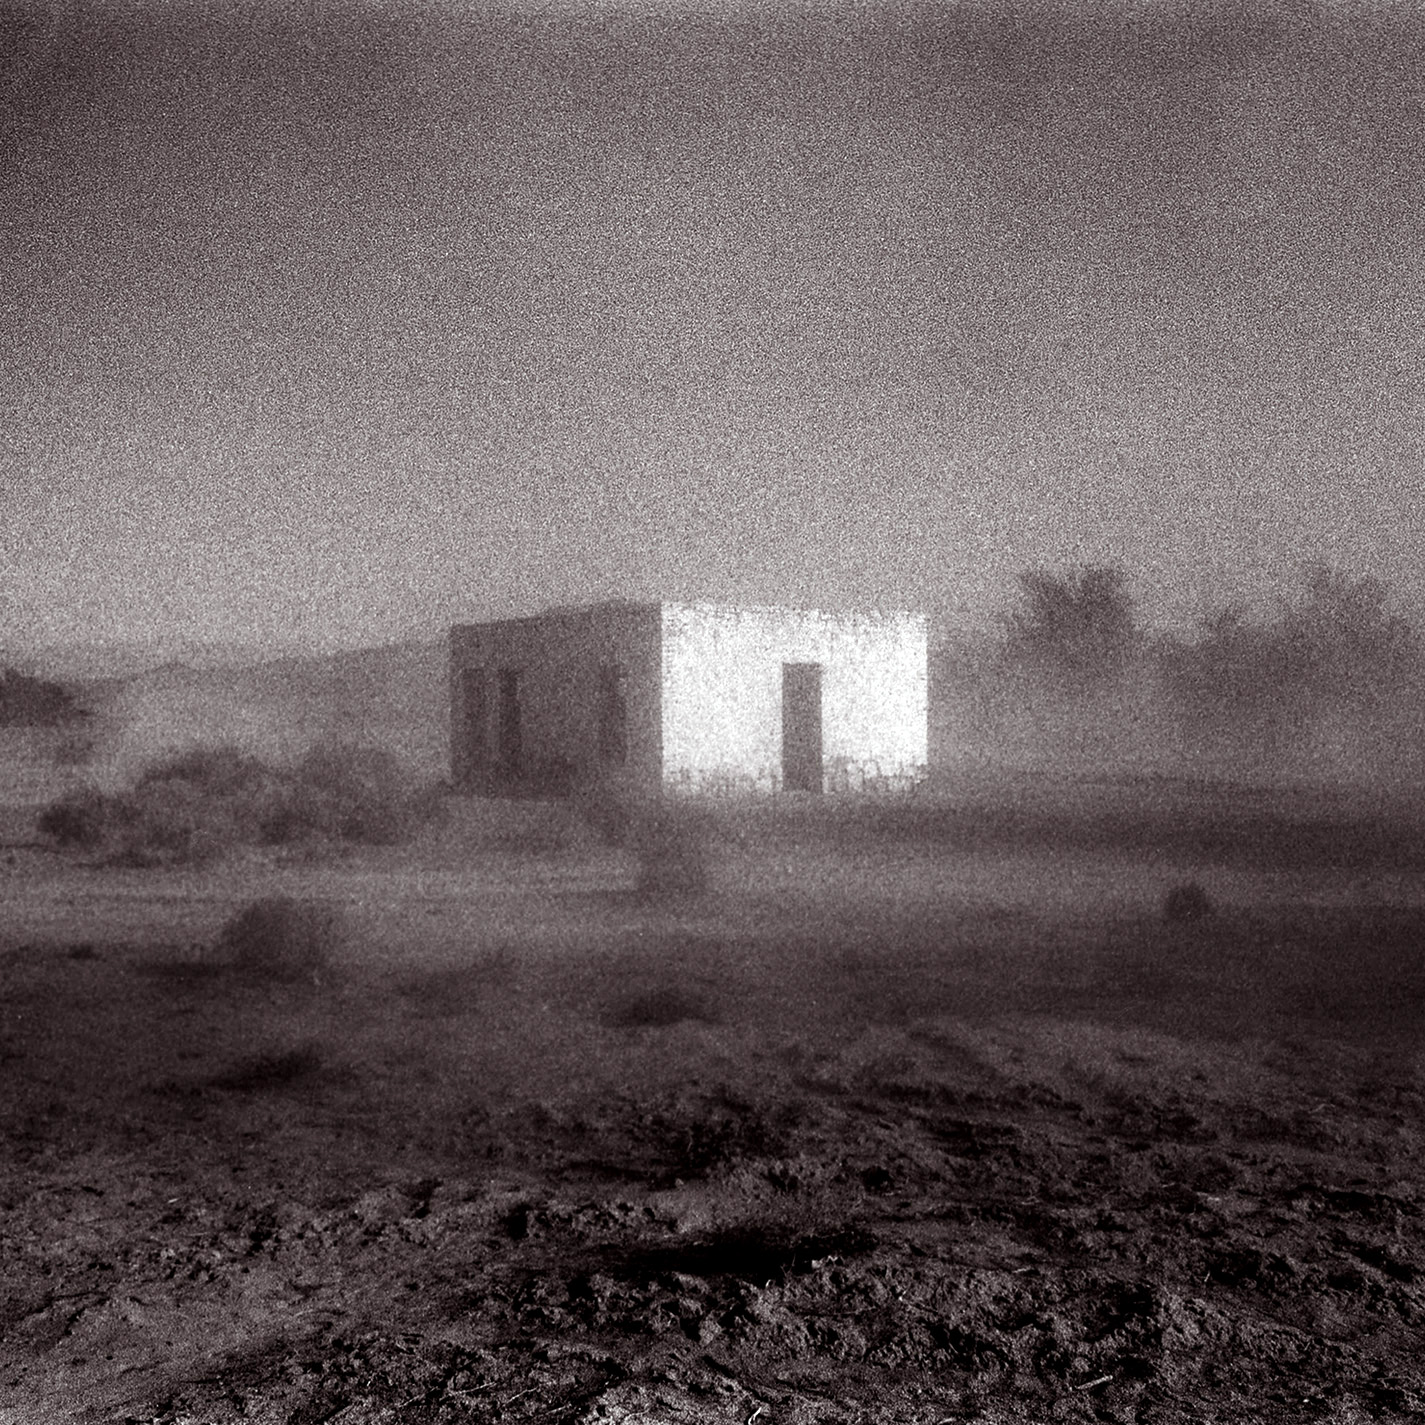 Godspeed you black emperor - allelujah